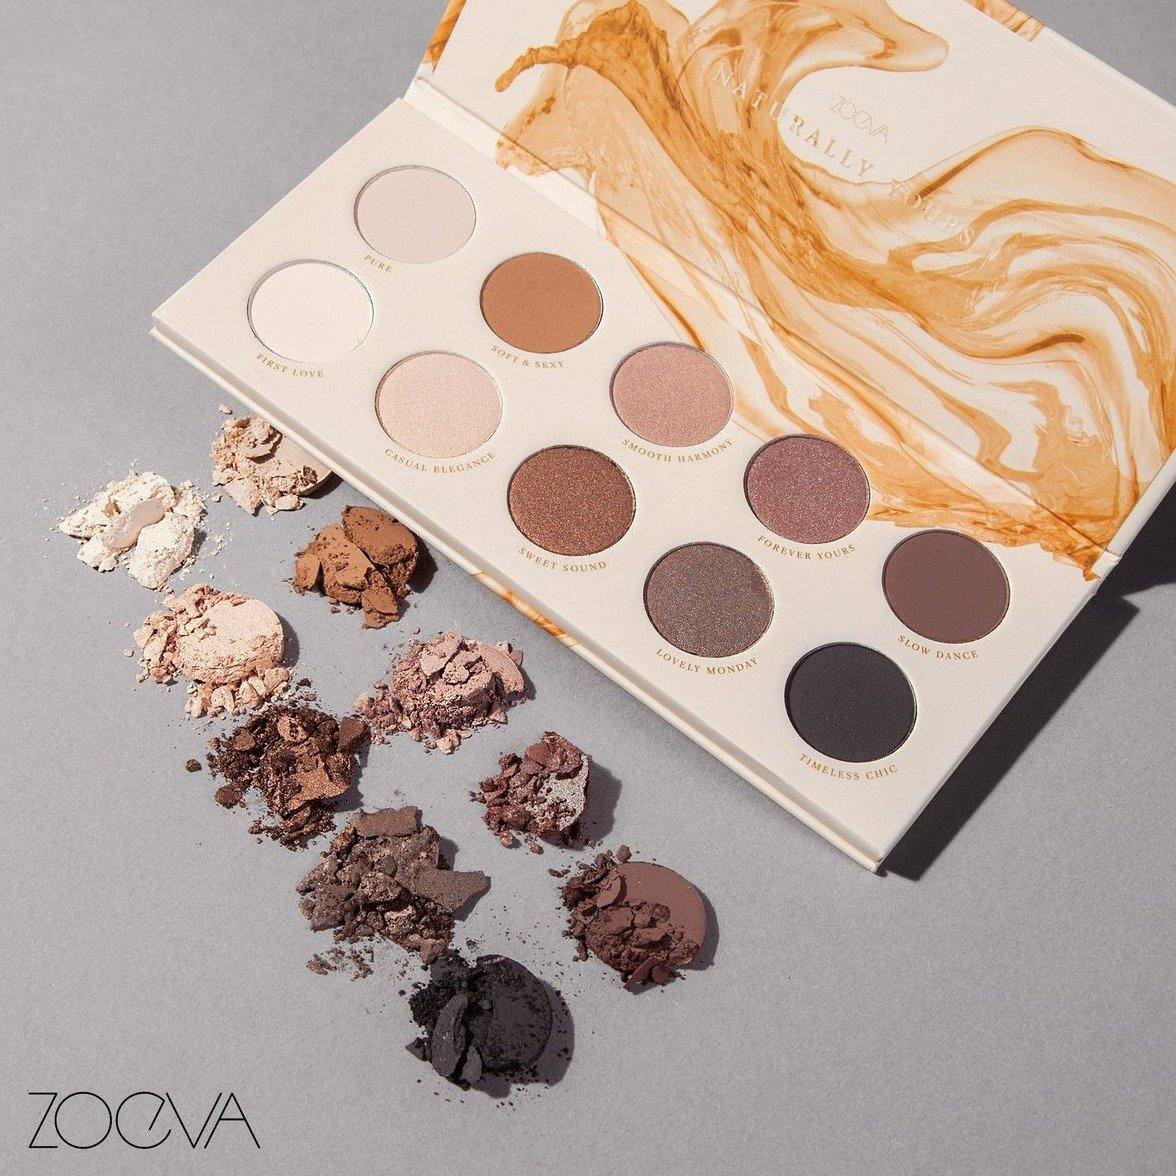 ZOEVA - NATURALLY YOURS EYESHADOW PALETTE - Lemon and Twig